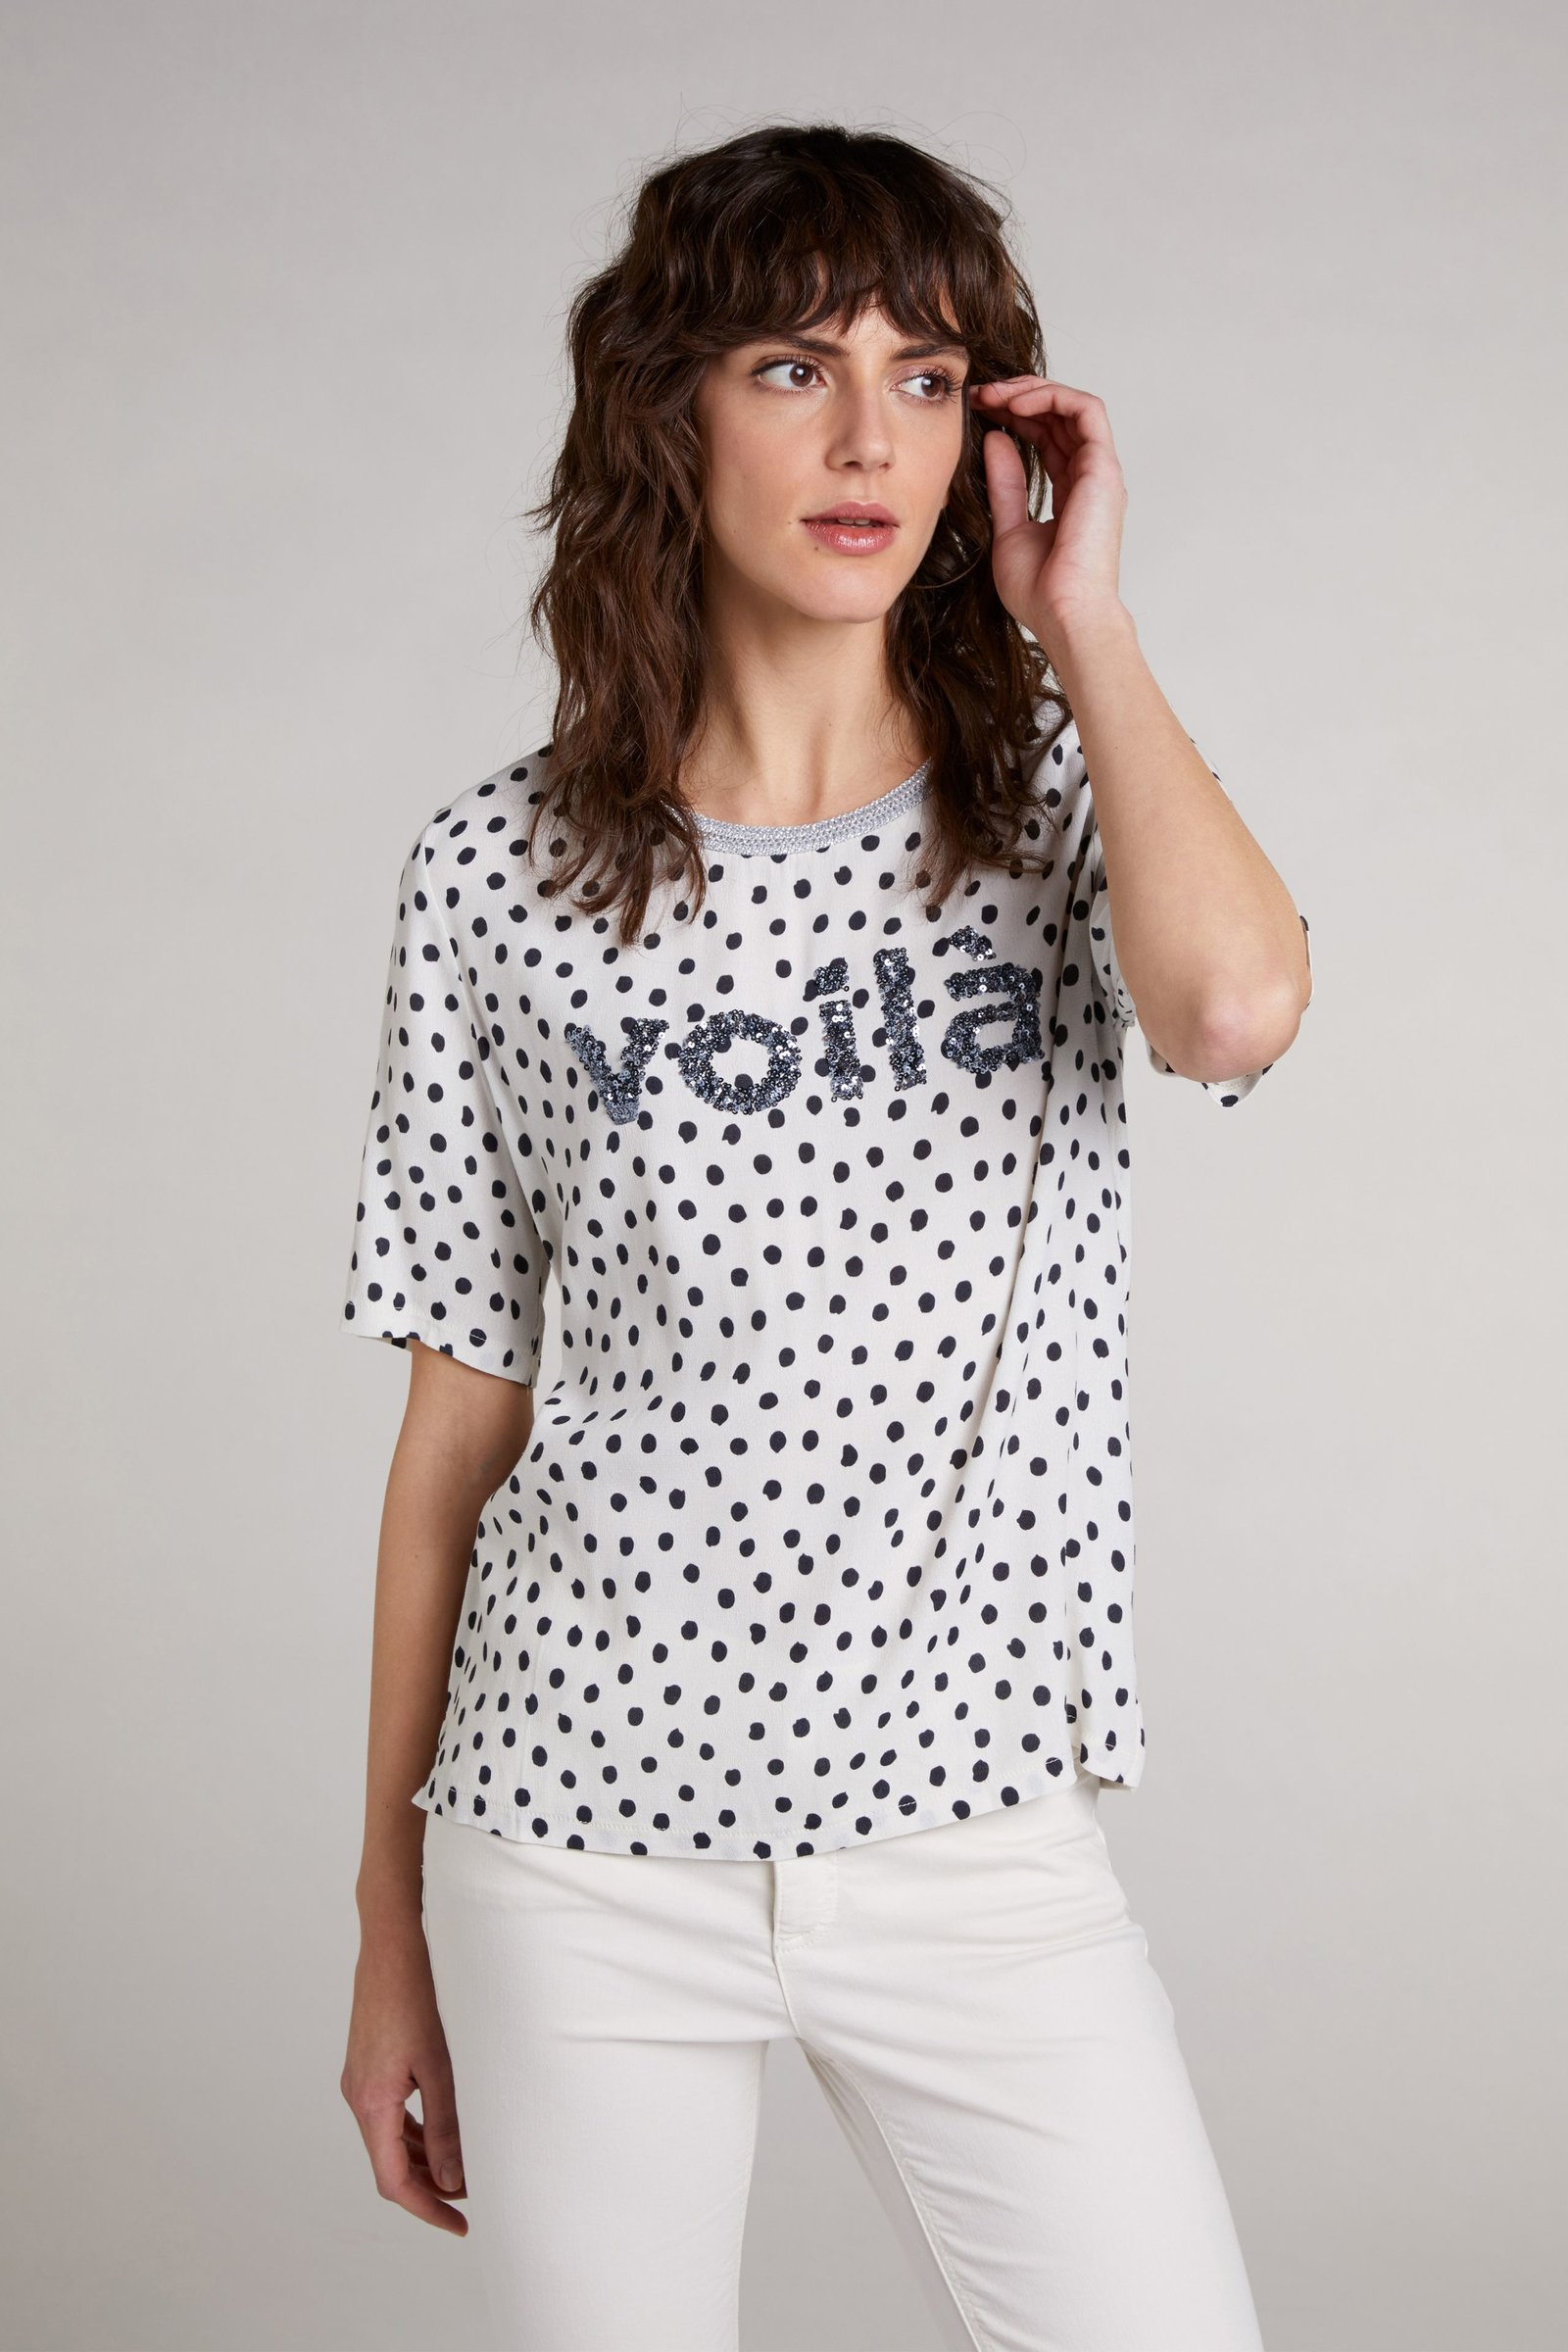 oui tshirt top blouse Tralee Kerry